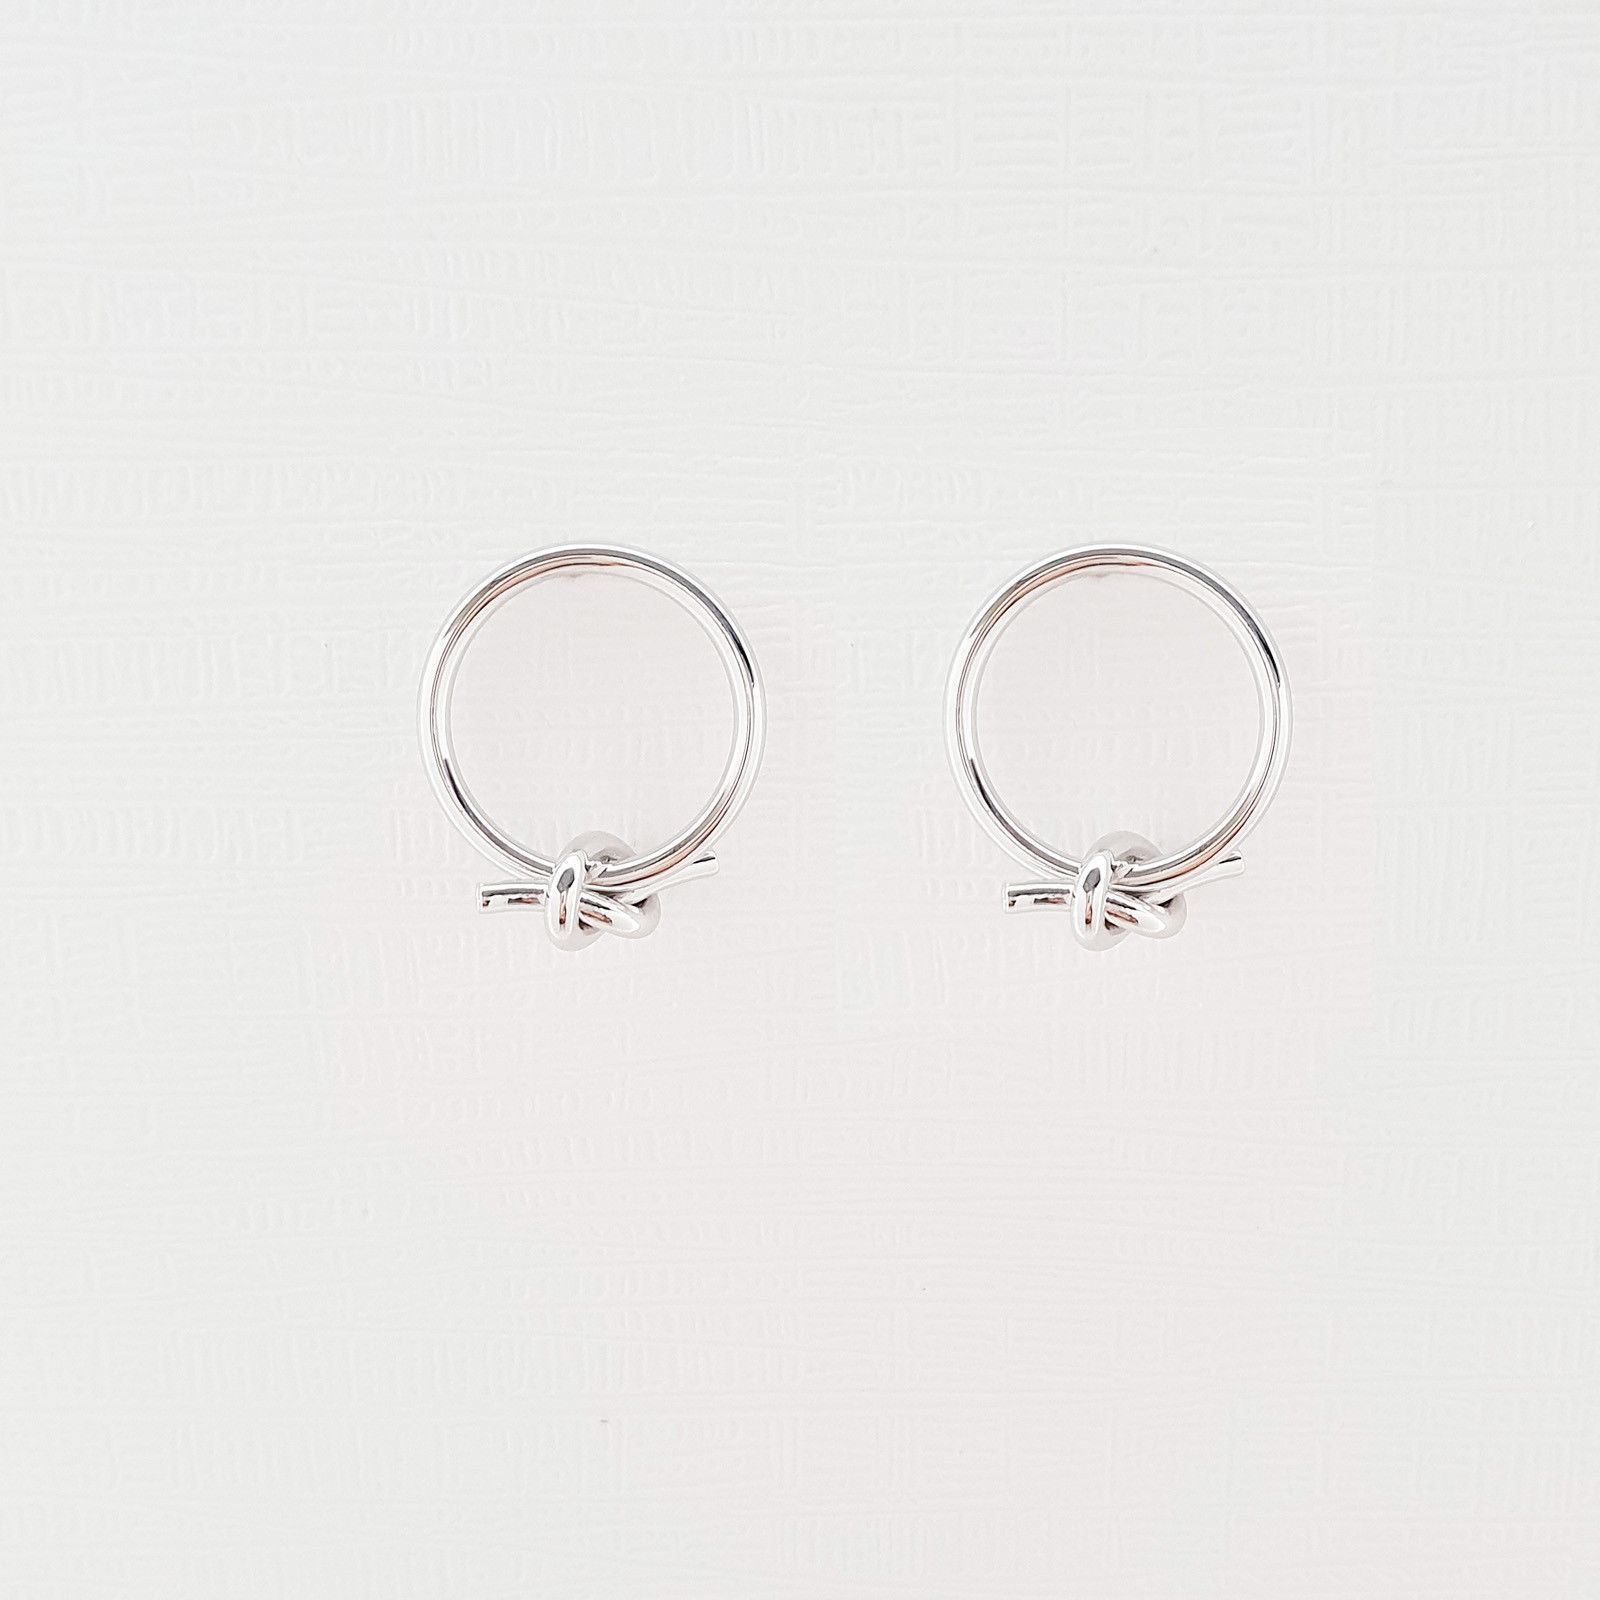 Open Circle Knot Stud Earrings Silver Tone  Brass Titanium Ear Gift For Women image 3